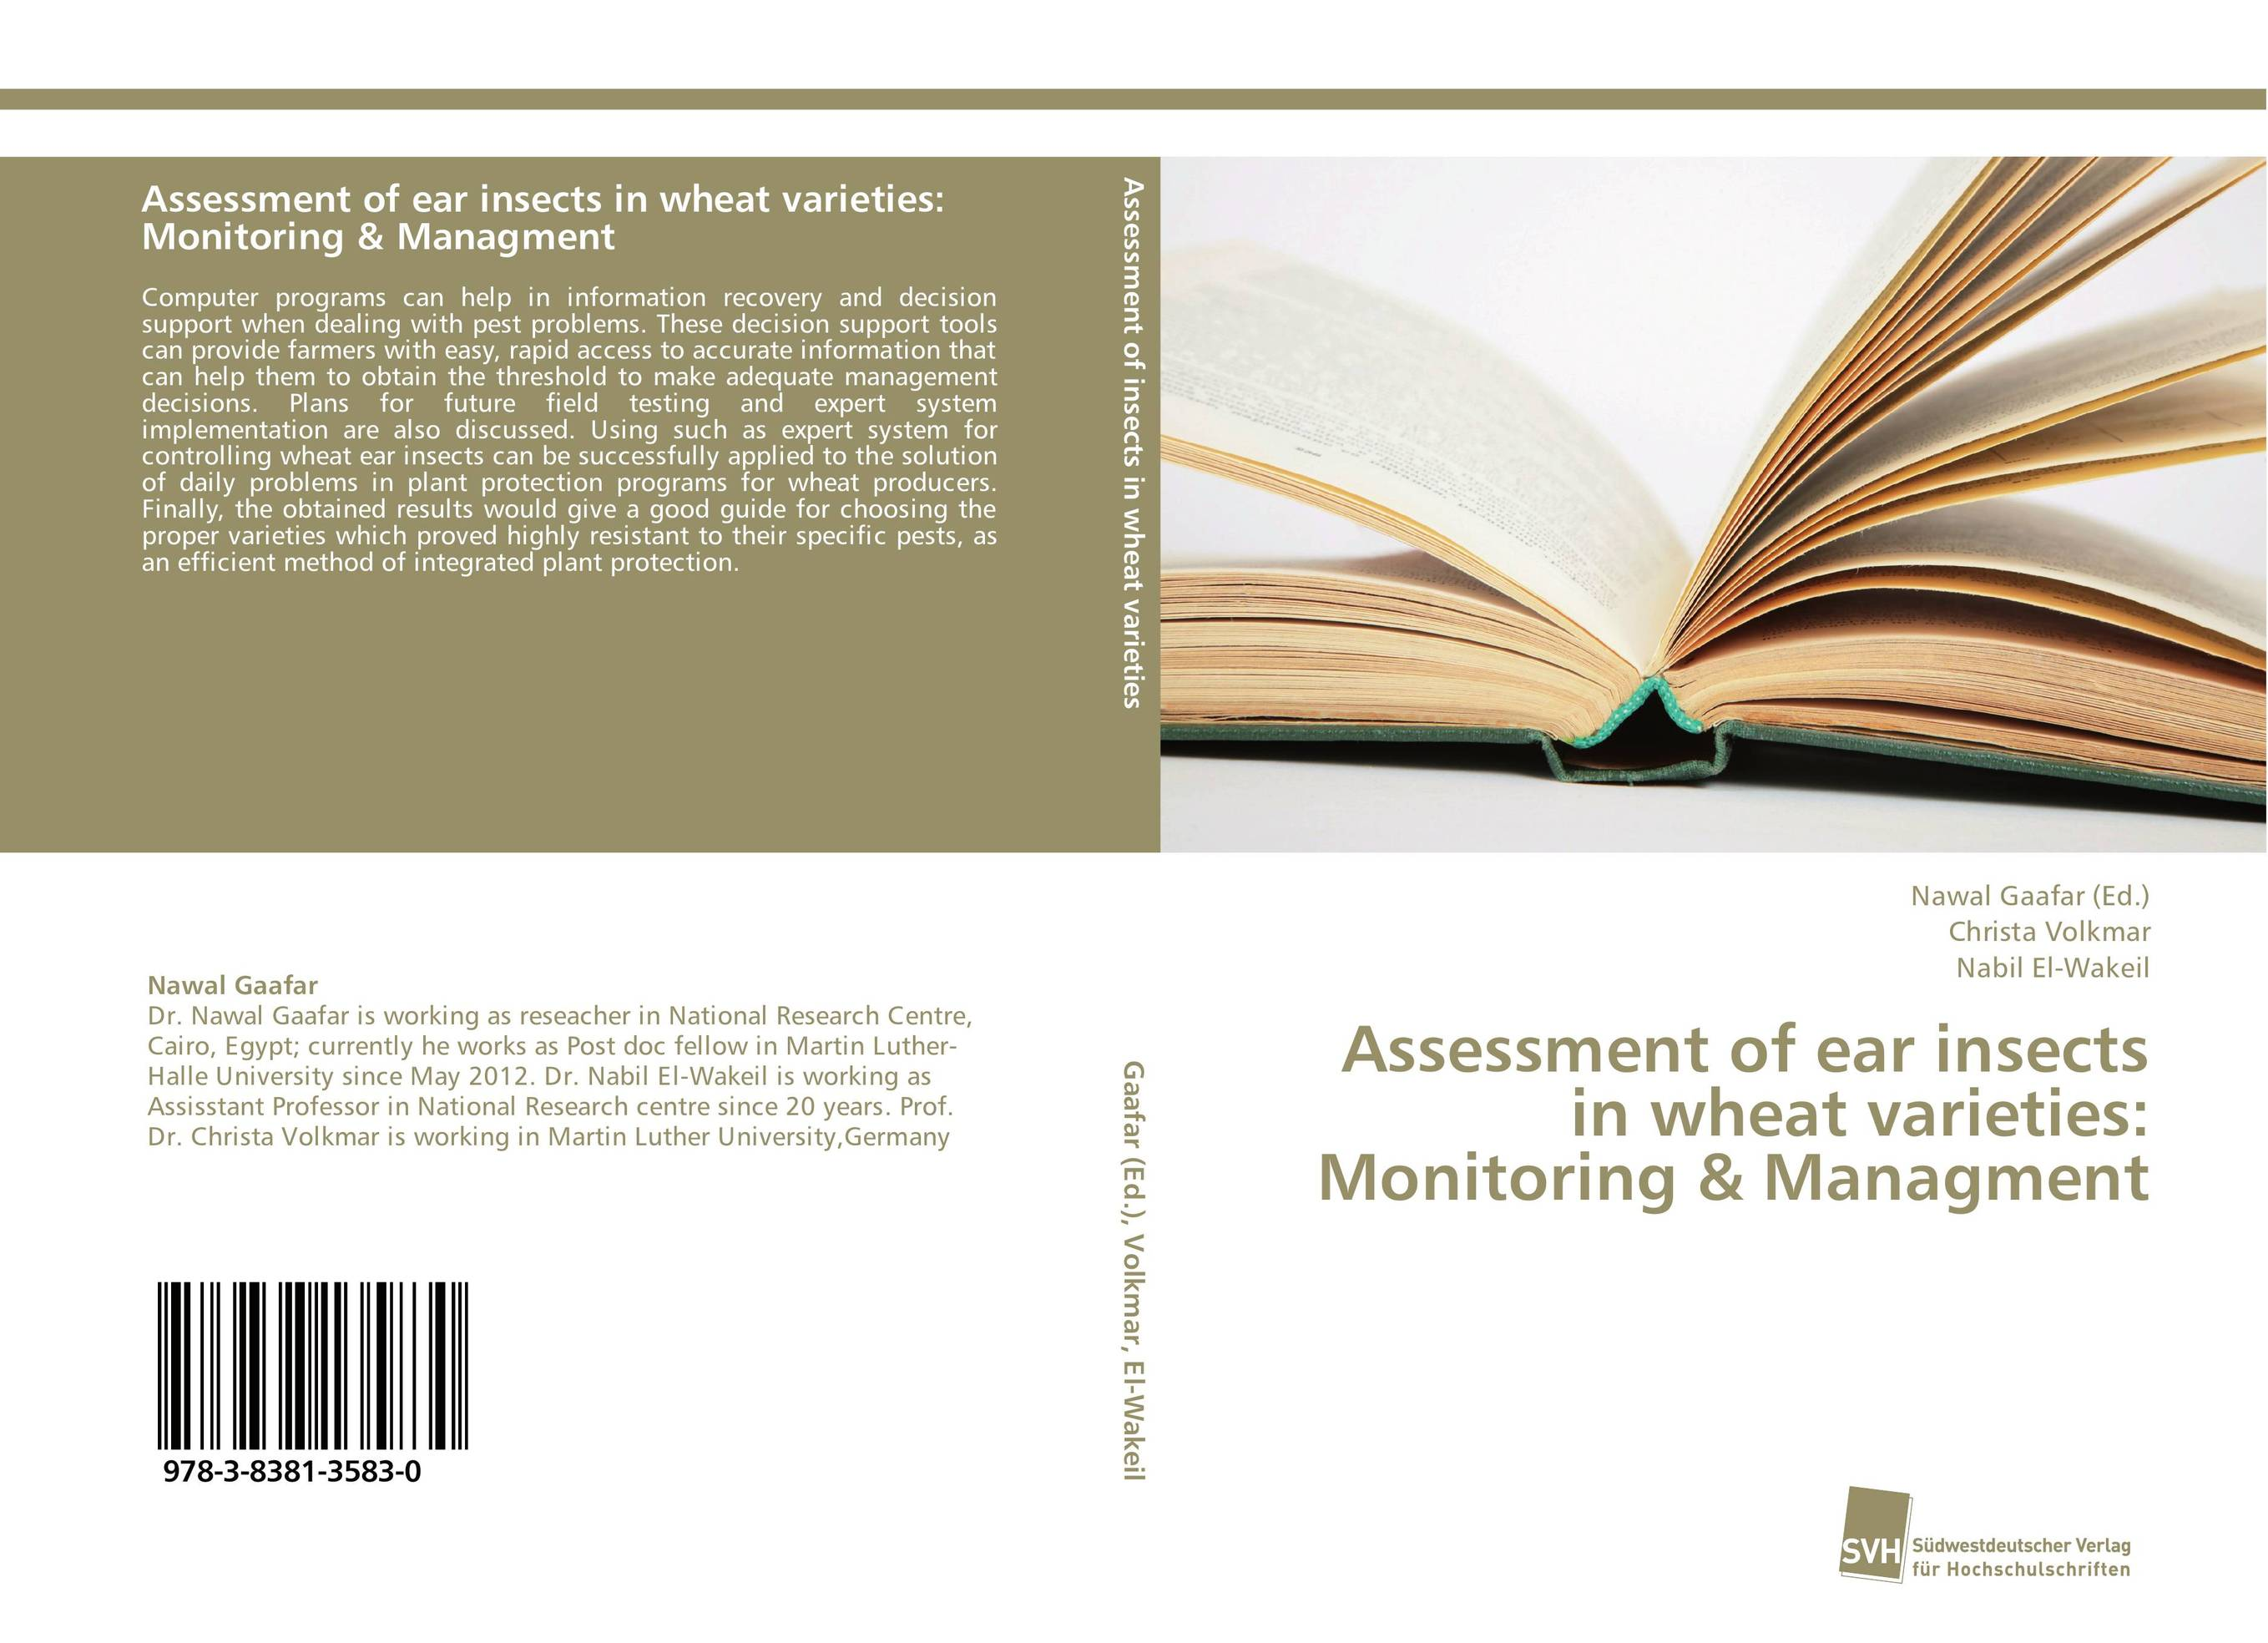 Assessment of ear insects in wheat varieties: Monitoring & Managment wheat breeding for rust resistance